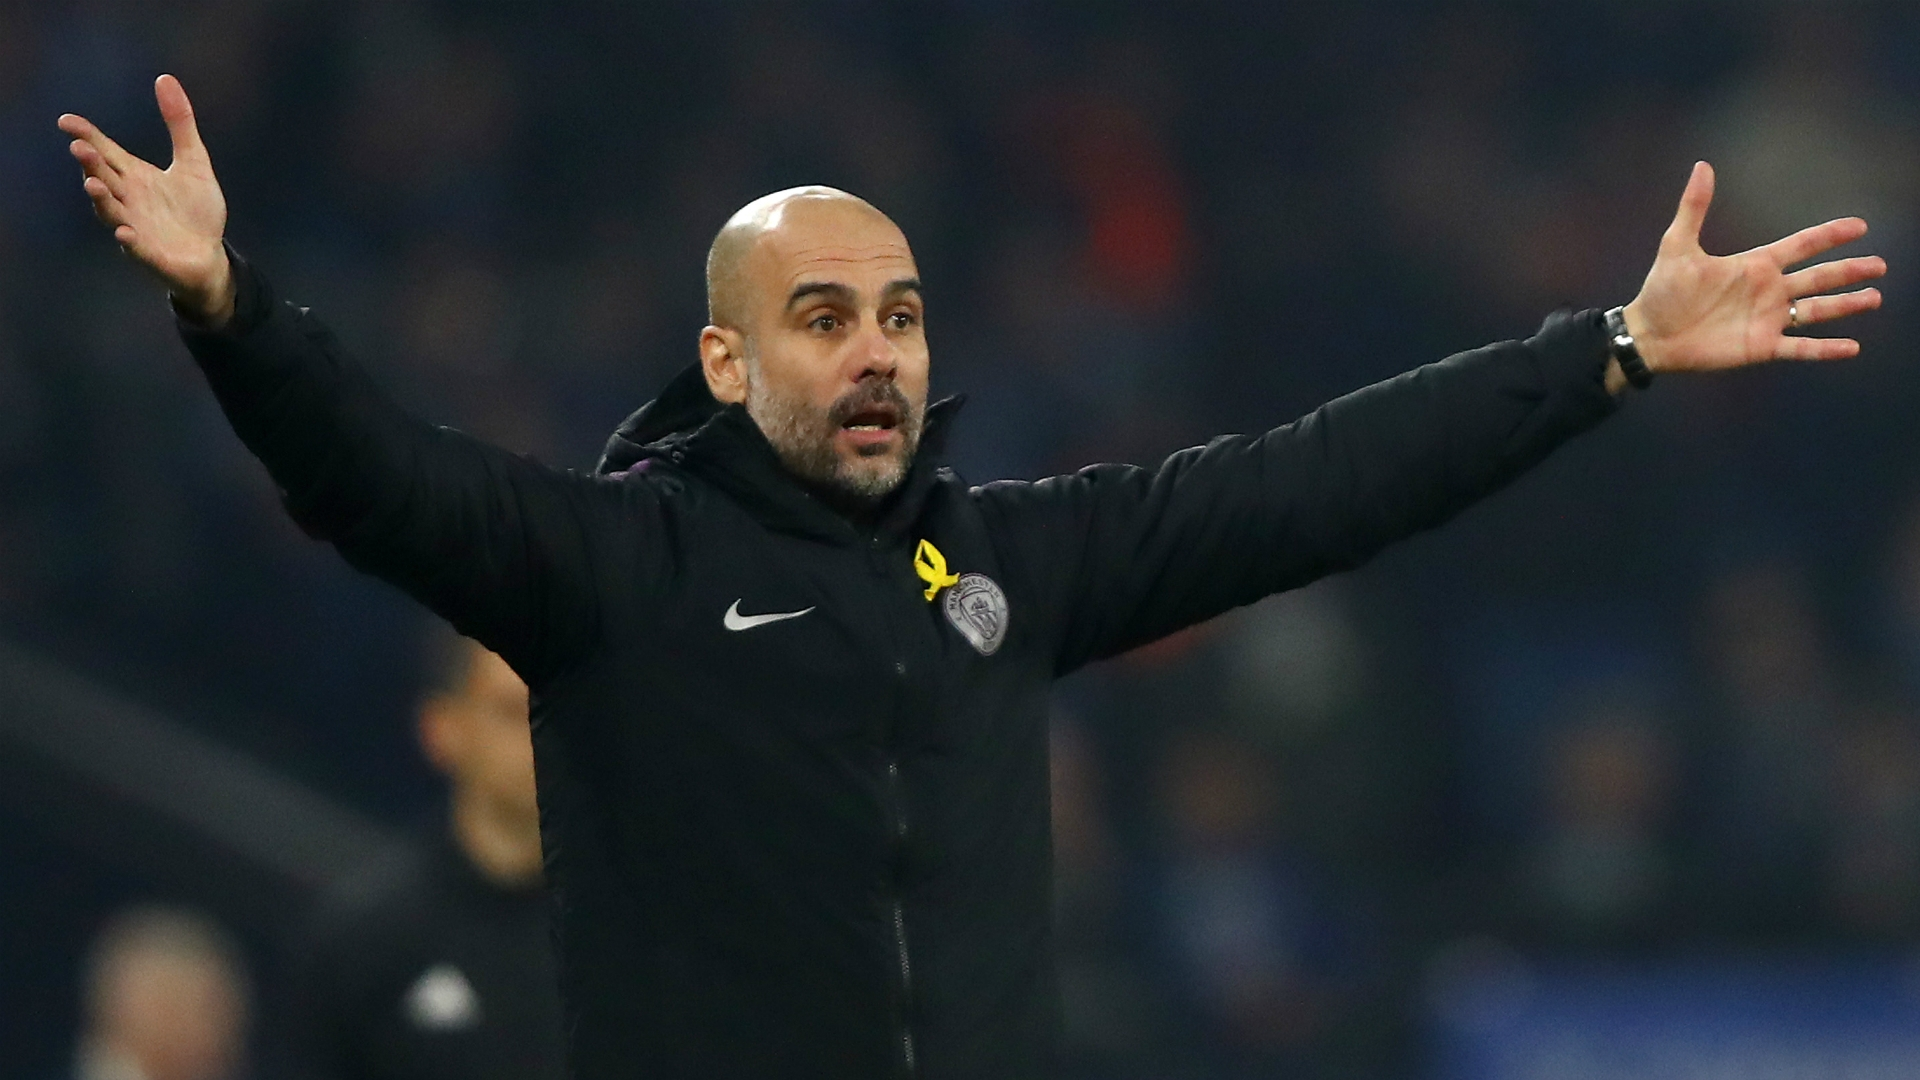 Pep Guardiola - Manchester City manager ahead of Champions League clash against Shalke 04